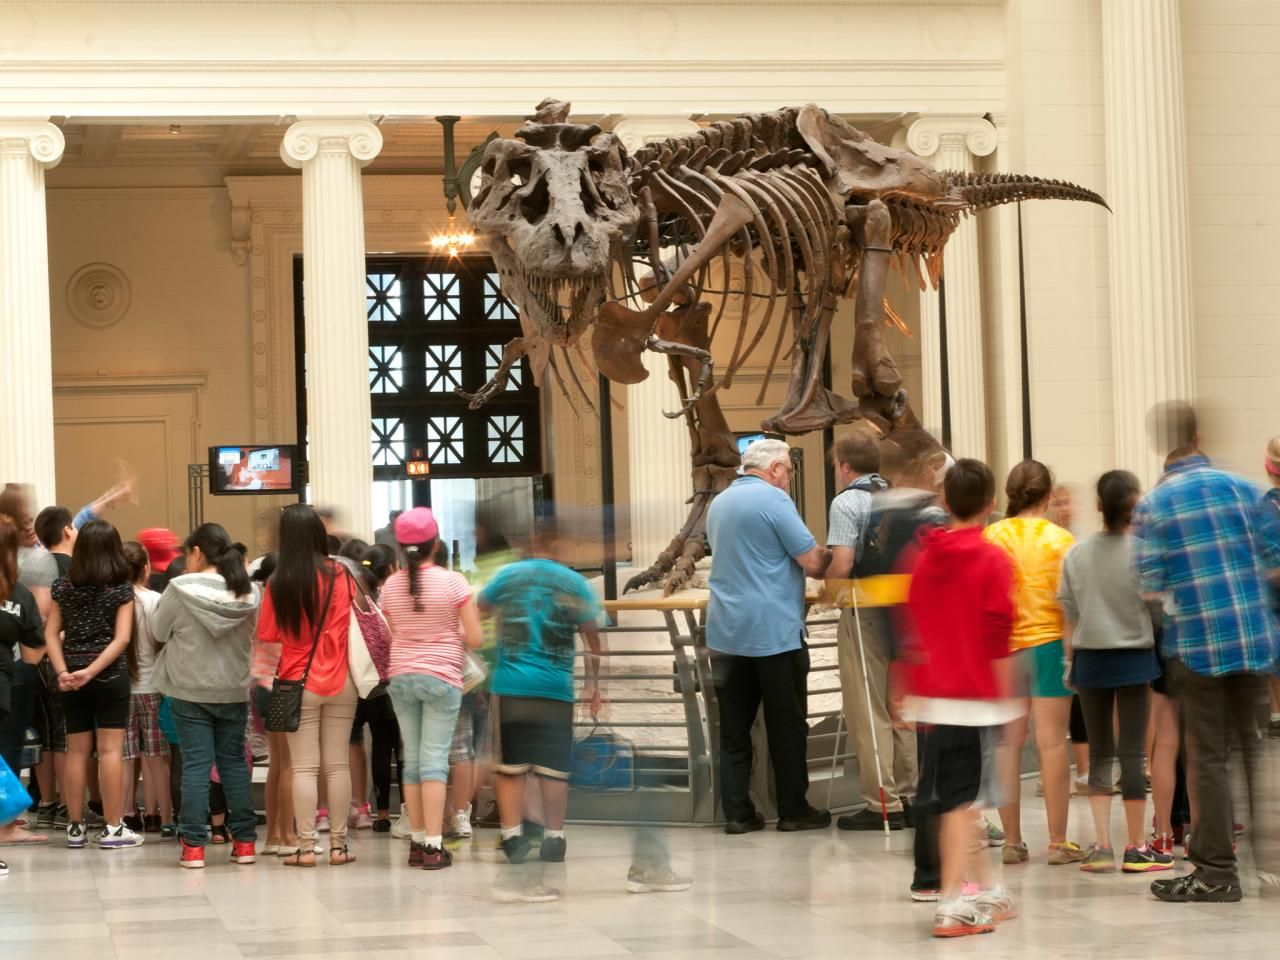 21 Top Family Route 66 Stops Chicago museums, Chicago